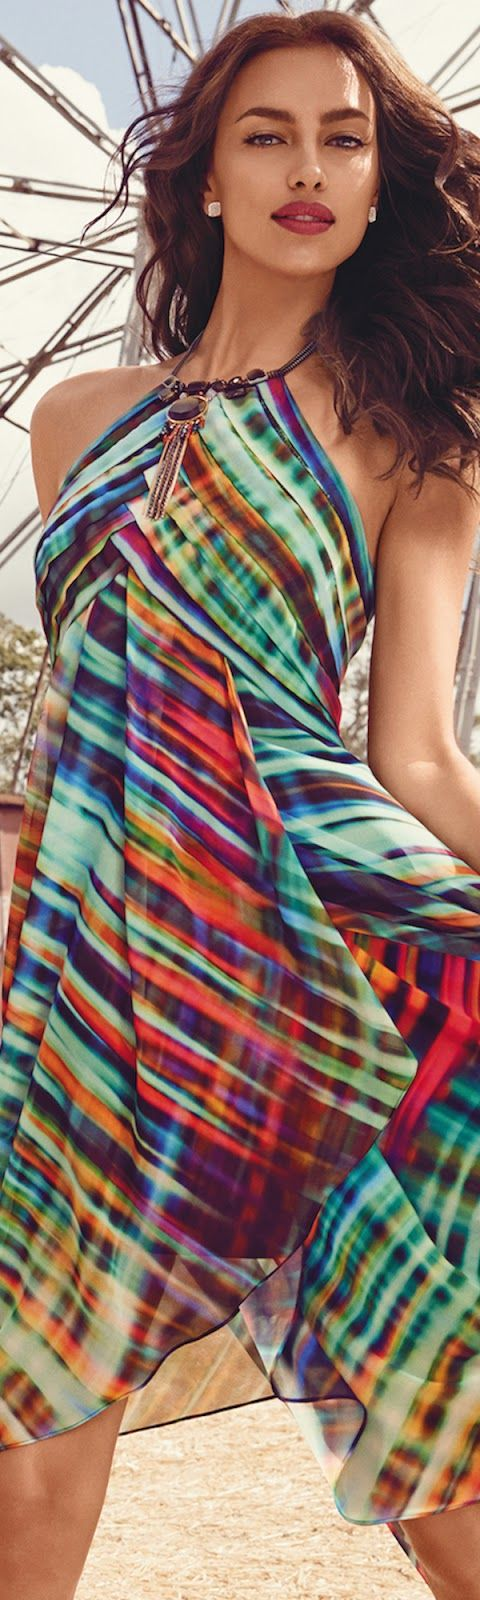 I have never worn a halter style dress but love these colors and print- hem line is fun and adds interest. -JJ